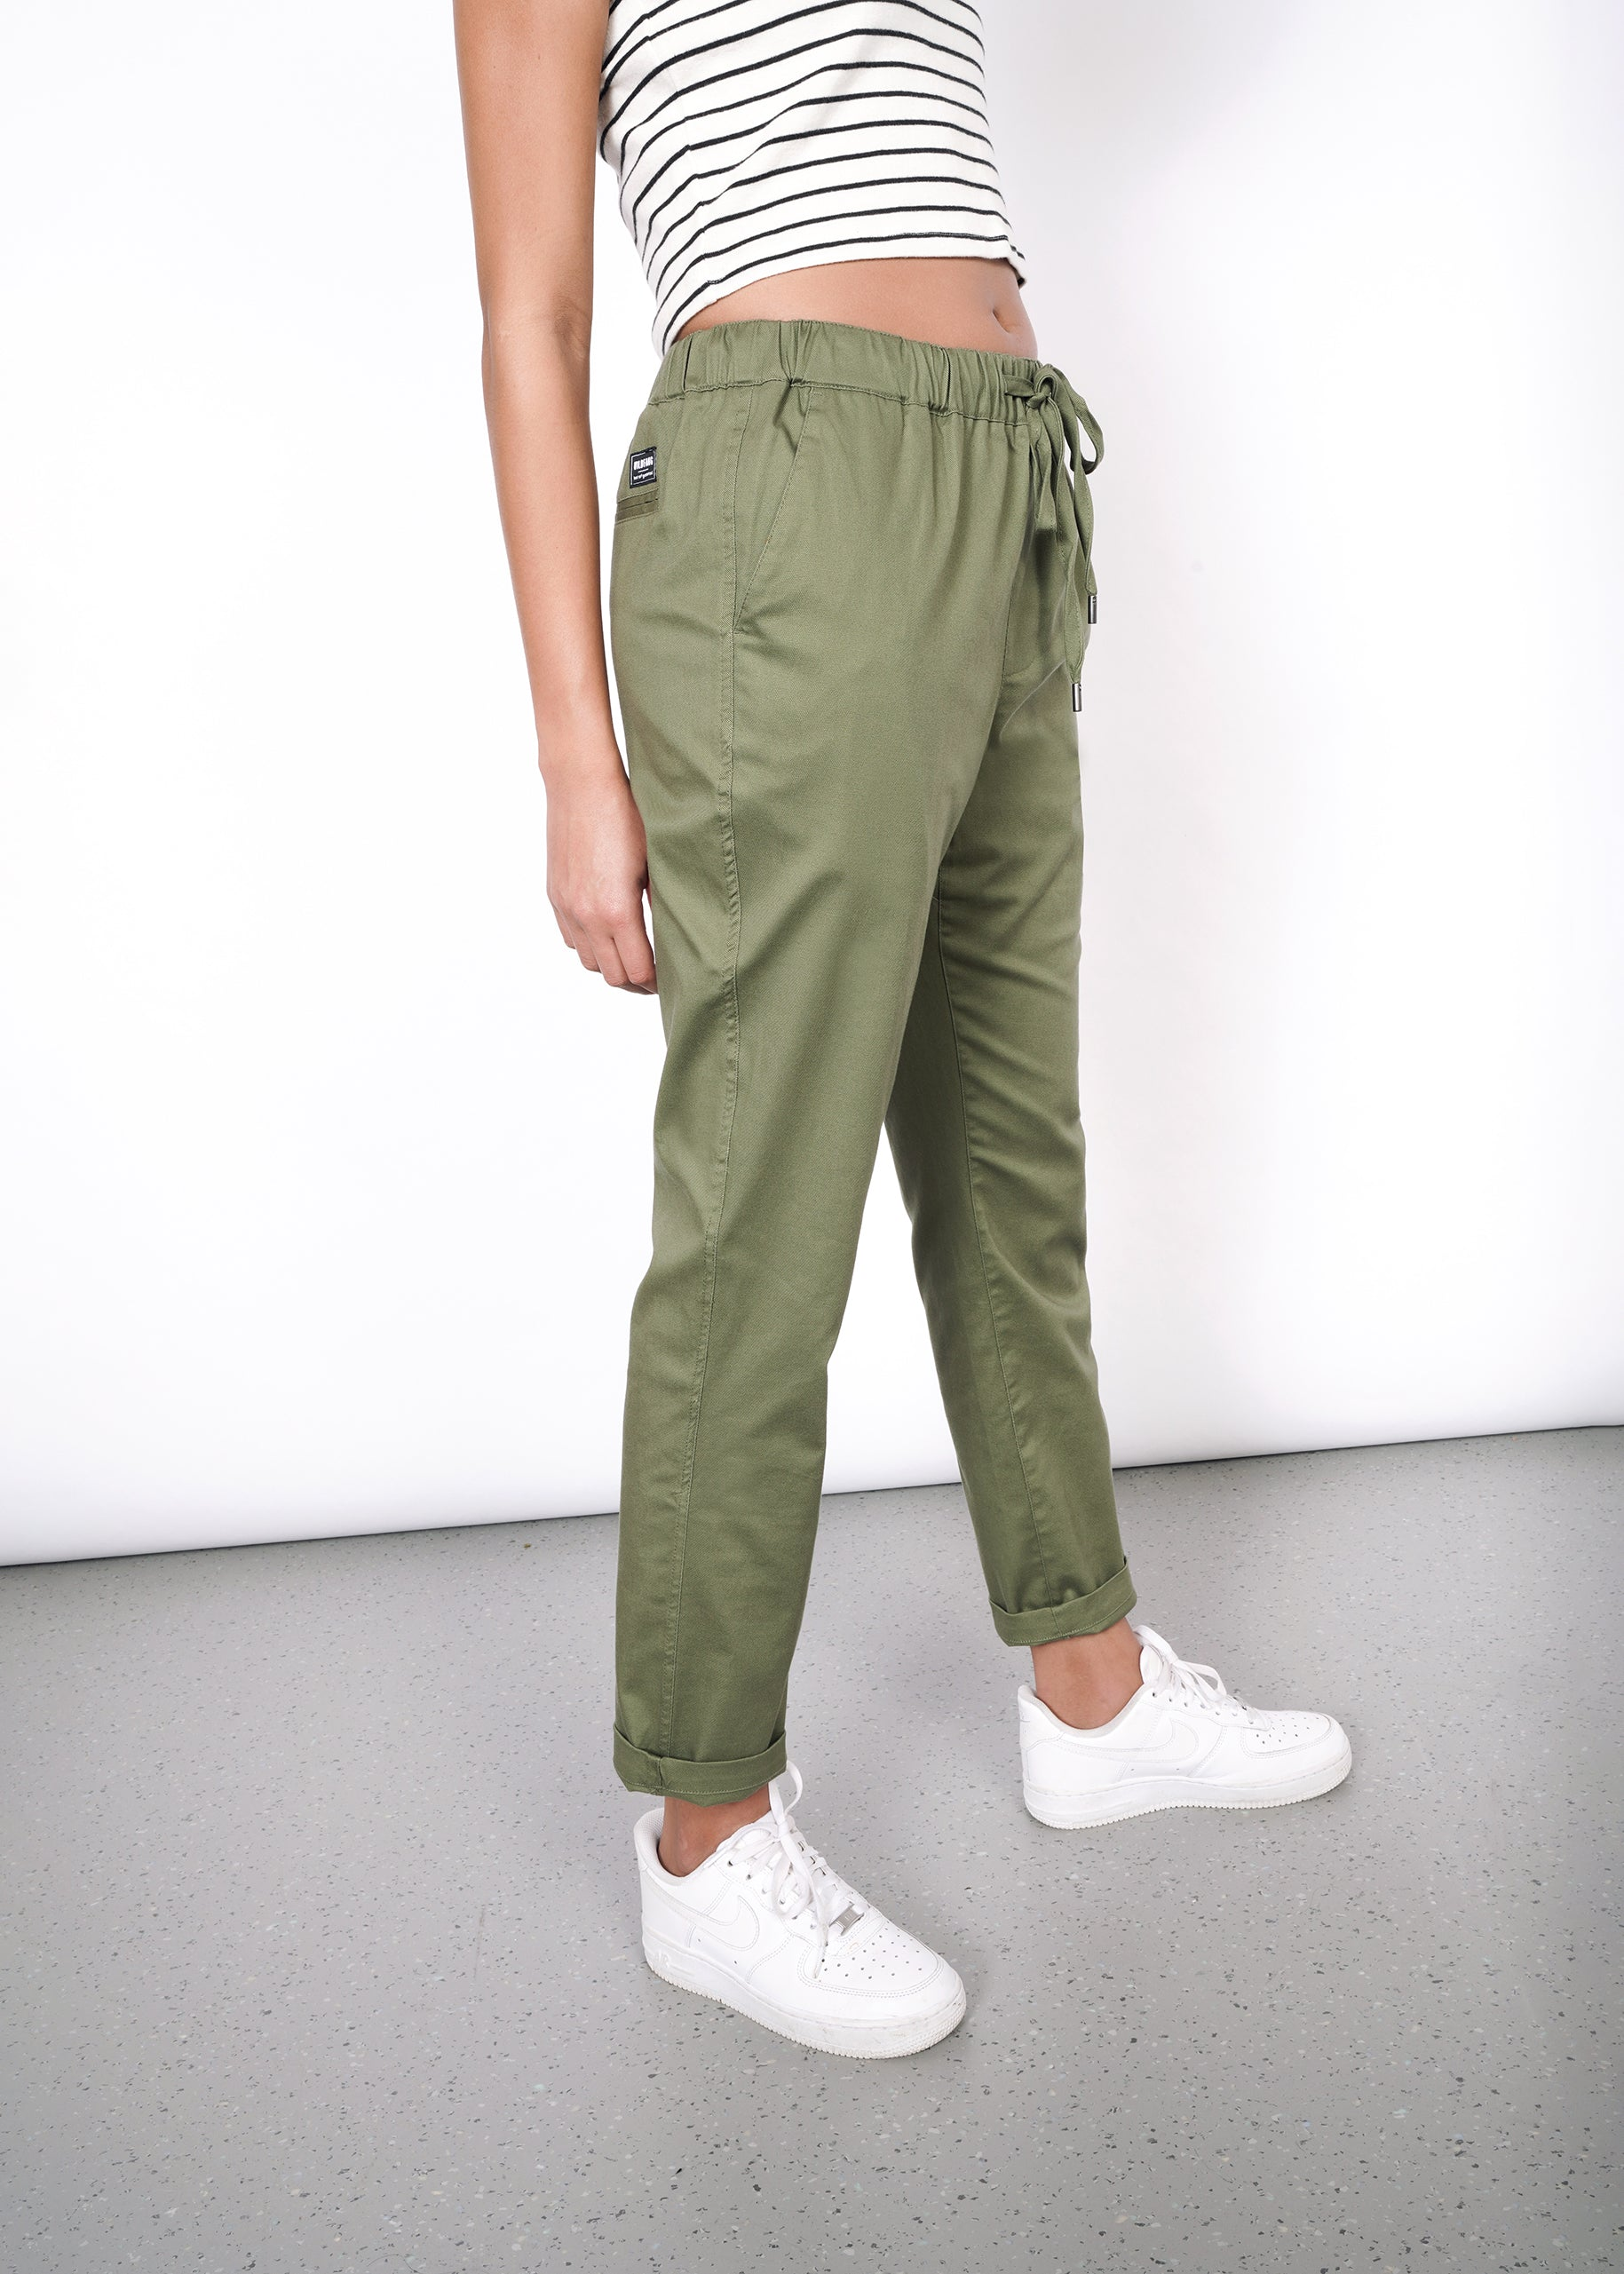 Olive drawstring pant on model, styled with white Nike sneakers and white striped tank top